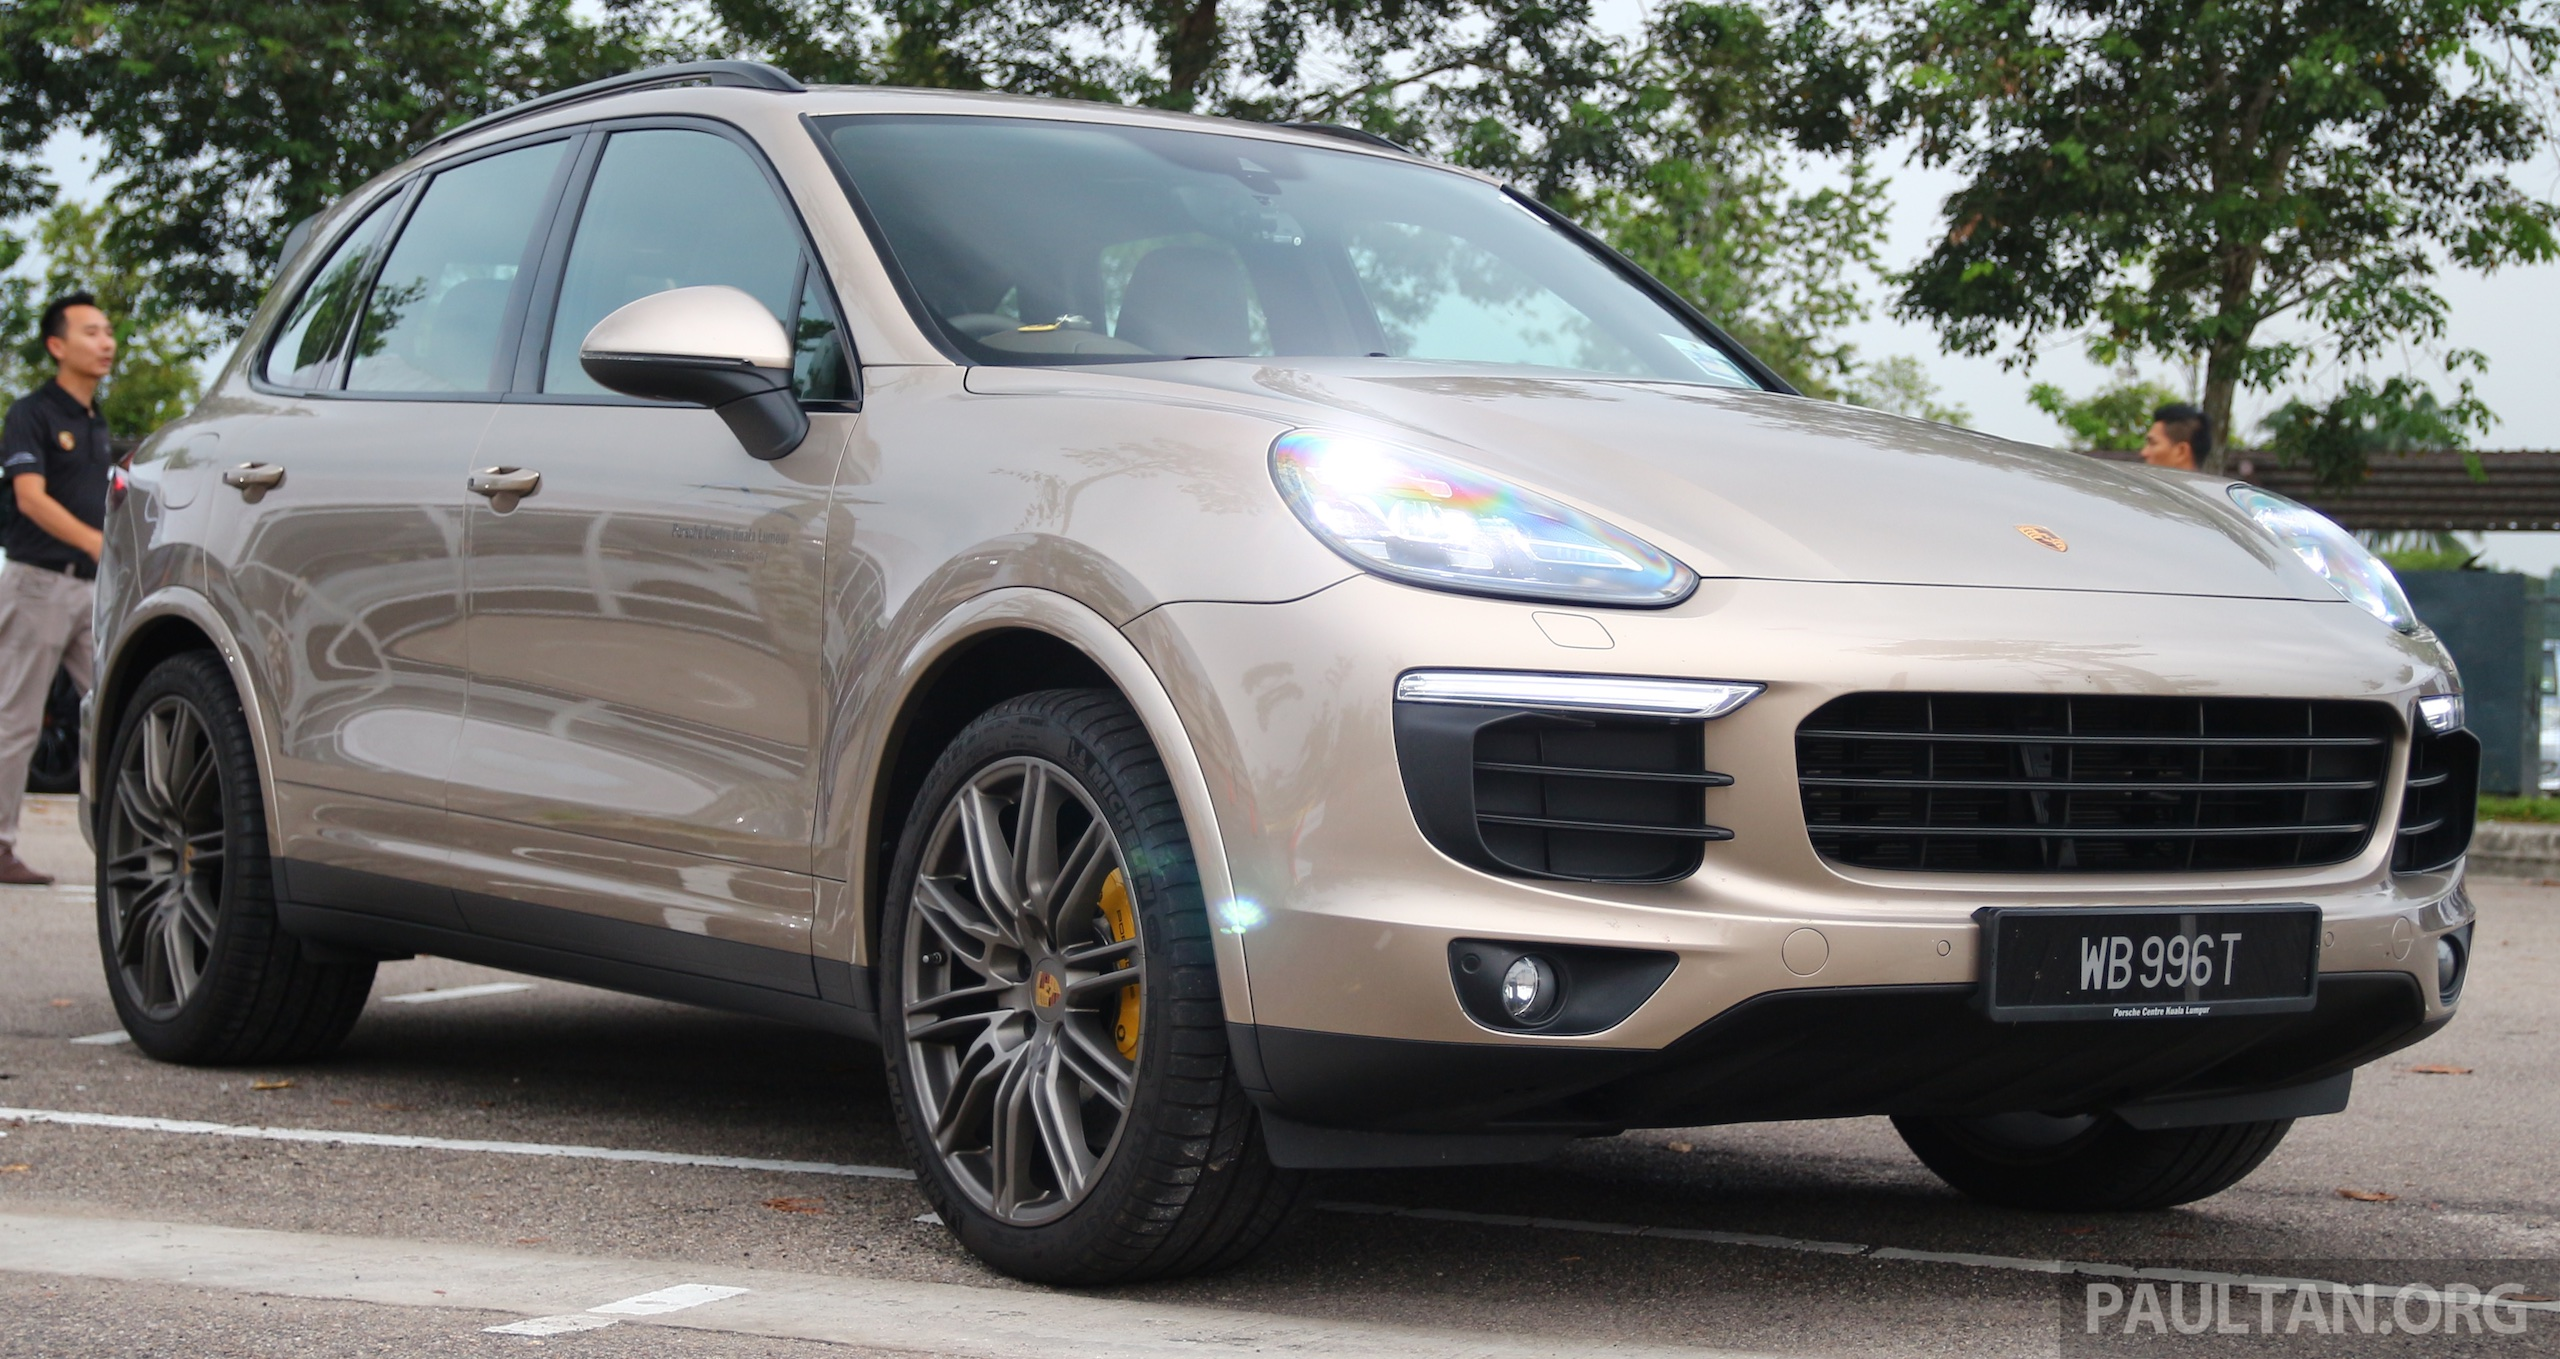 driven porsche cayenne facelift to johor and back. Black Bedroom Furniture Sets. Home Design Ideas